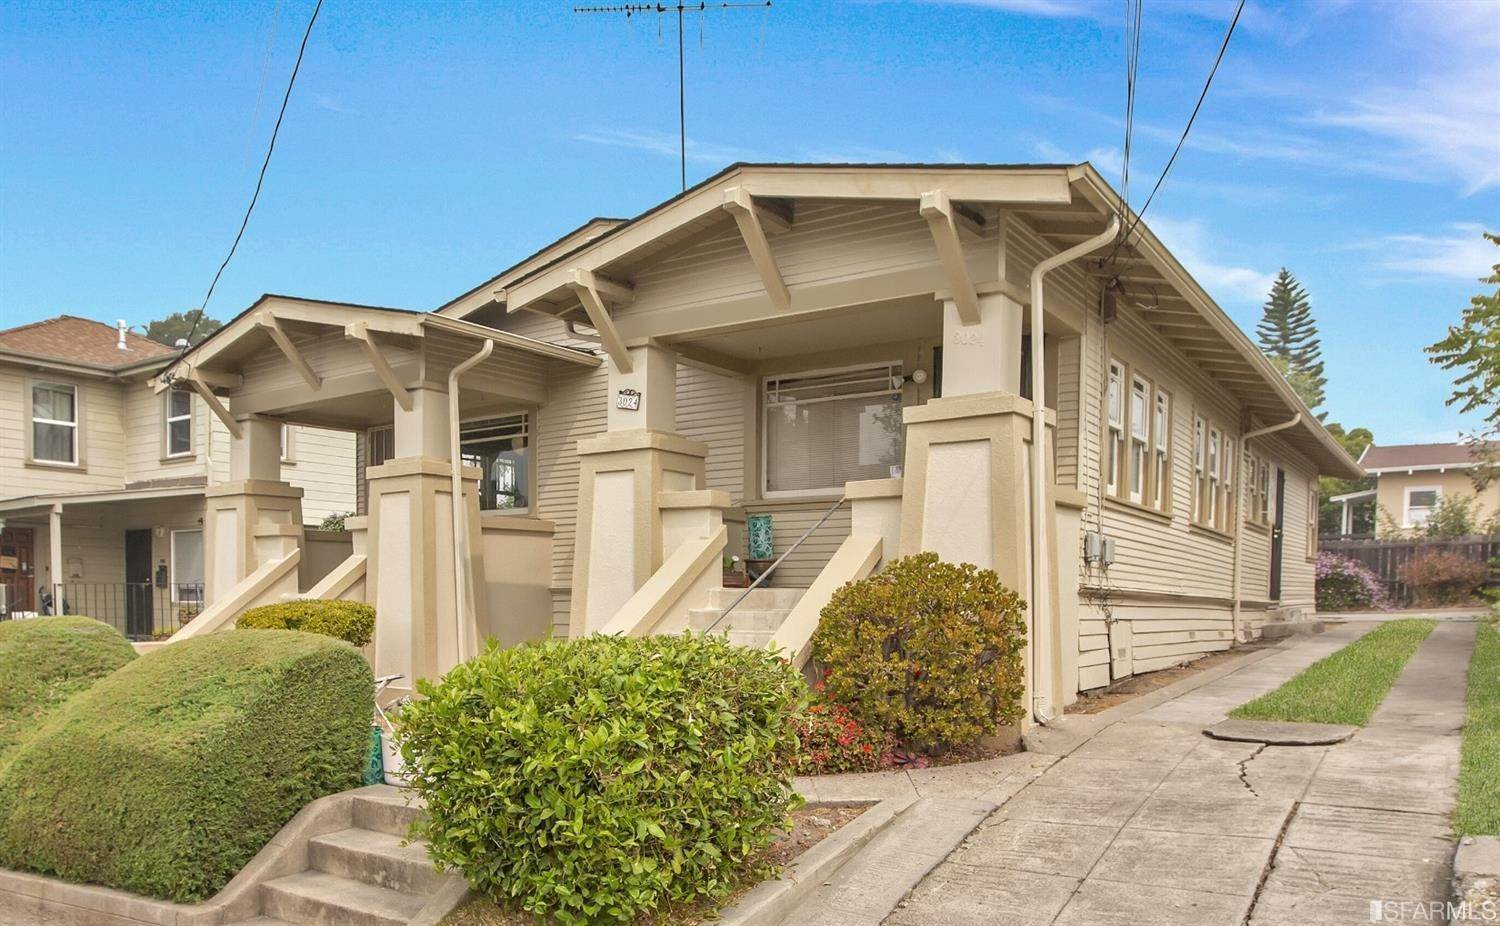 Duplex Homes for Sale at 3024 29th Street Oakland, California 94601 United States